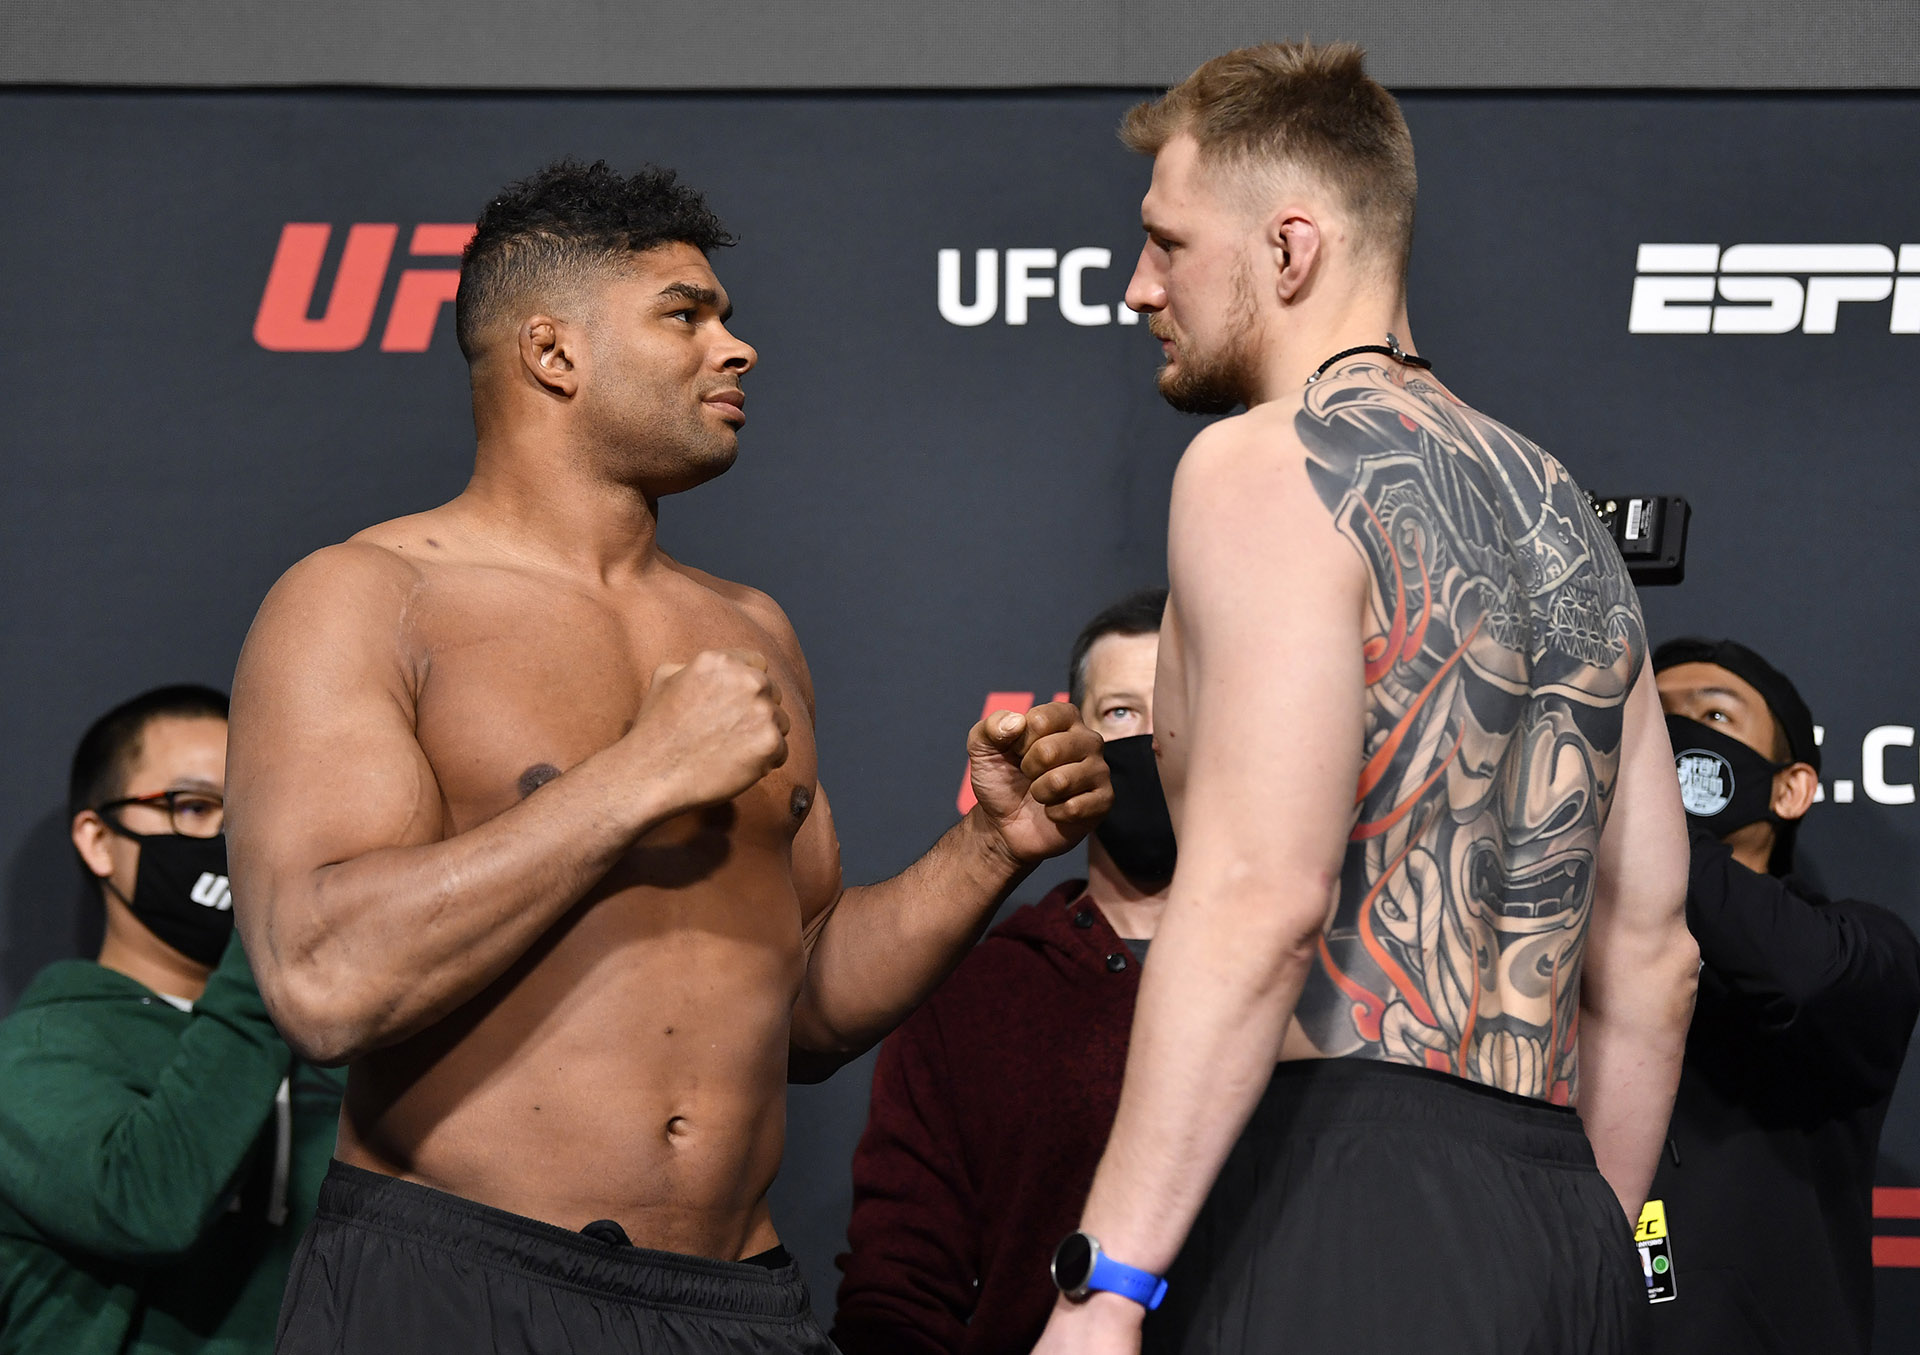 Opponents Alistair Overeem of the Netherlands and Alexander Volkov of Russia face off during the UFC weigh-in at UFC APEX on February 05, 2021 in Las Vegas, Nevada